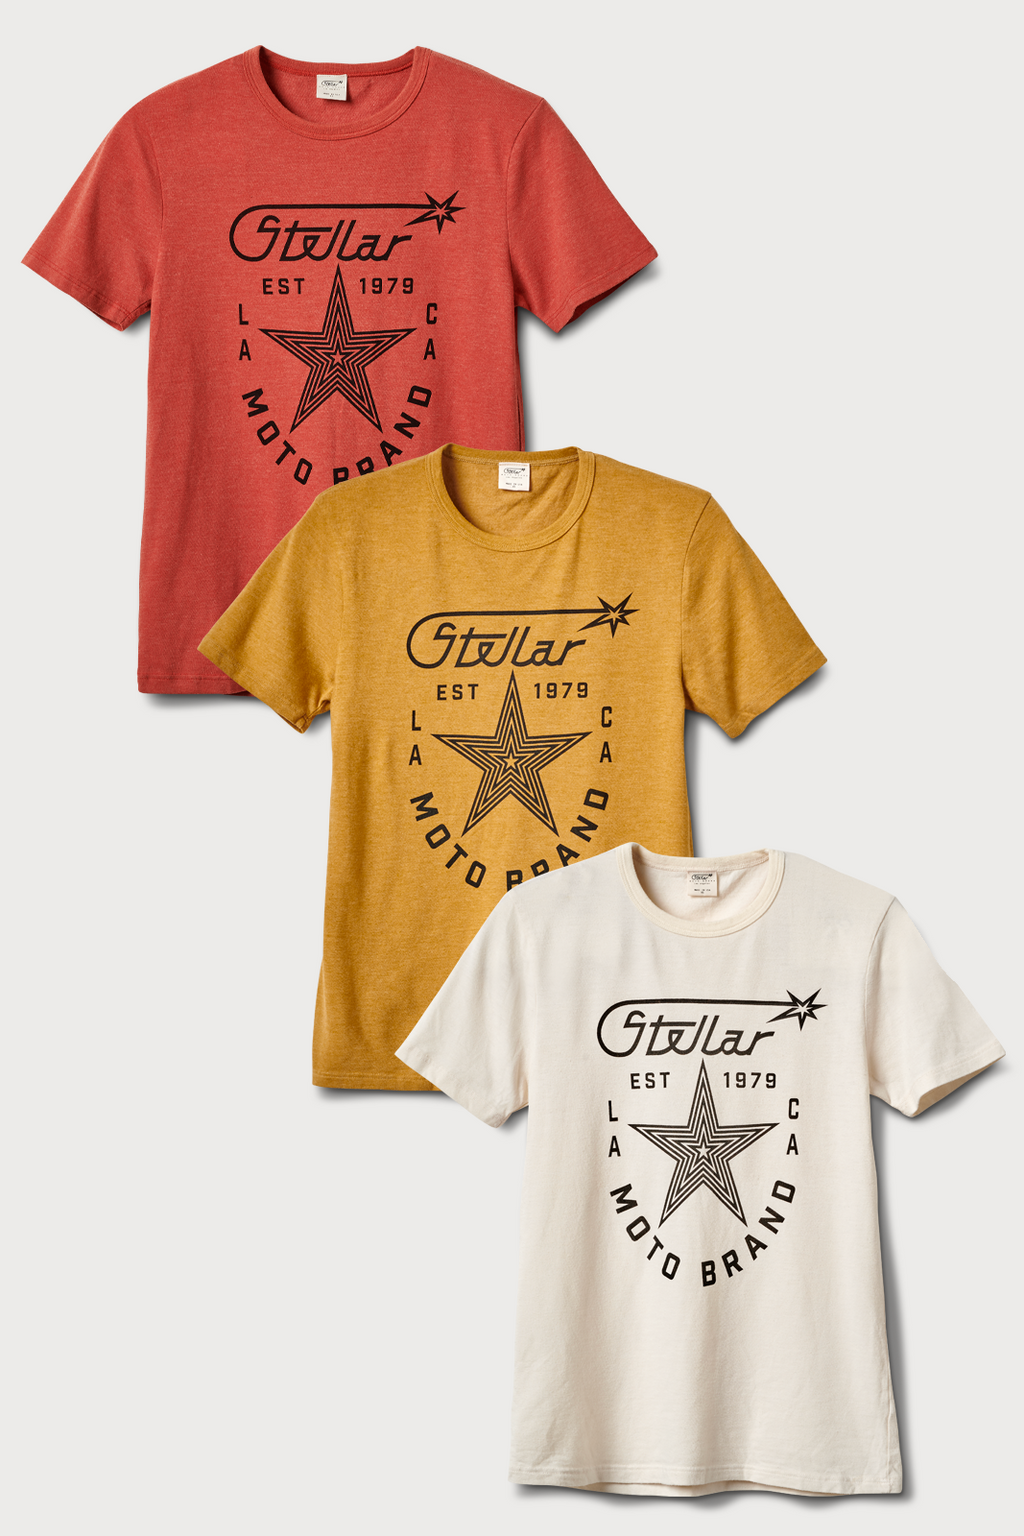 Stellar, Moto, functional art, moto gear, MOTO rally t-shirt, neckline, cotton, vintage, short sleeve, protective wear, functional fashion, motorcycle, shirt, tee, retro, fashion,  soft, airflow, resistant, strong, STAR SHIELD T shirt